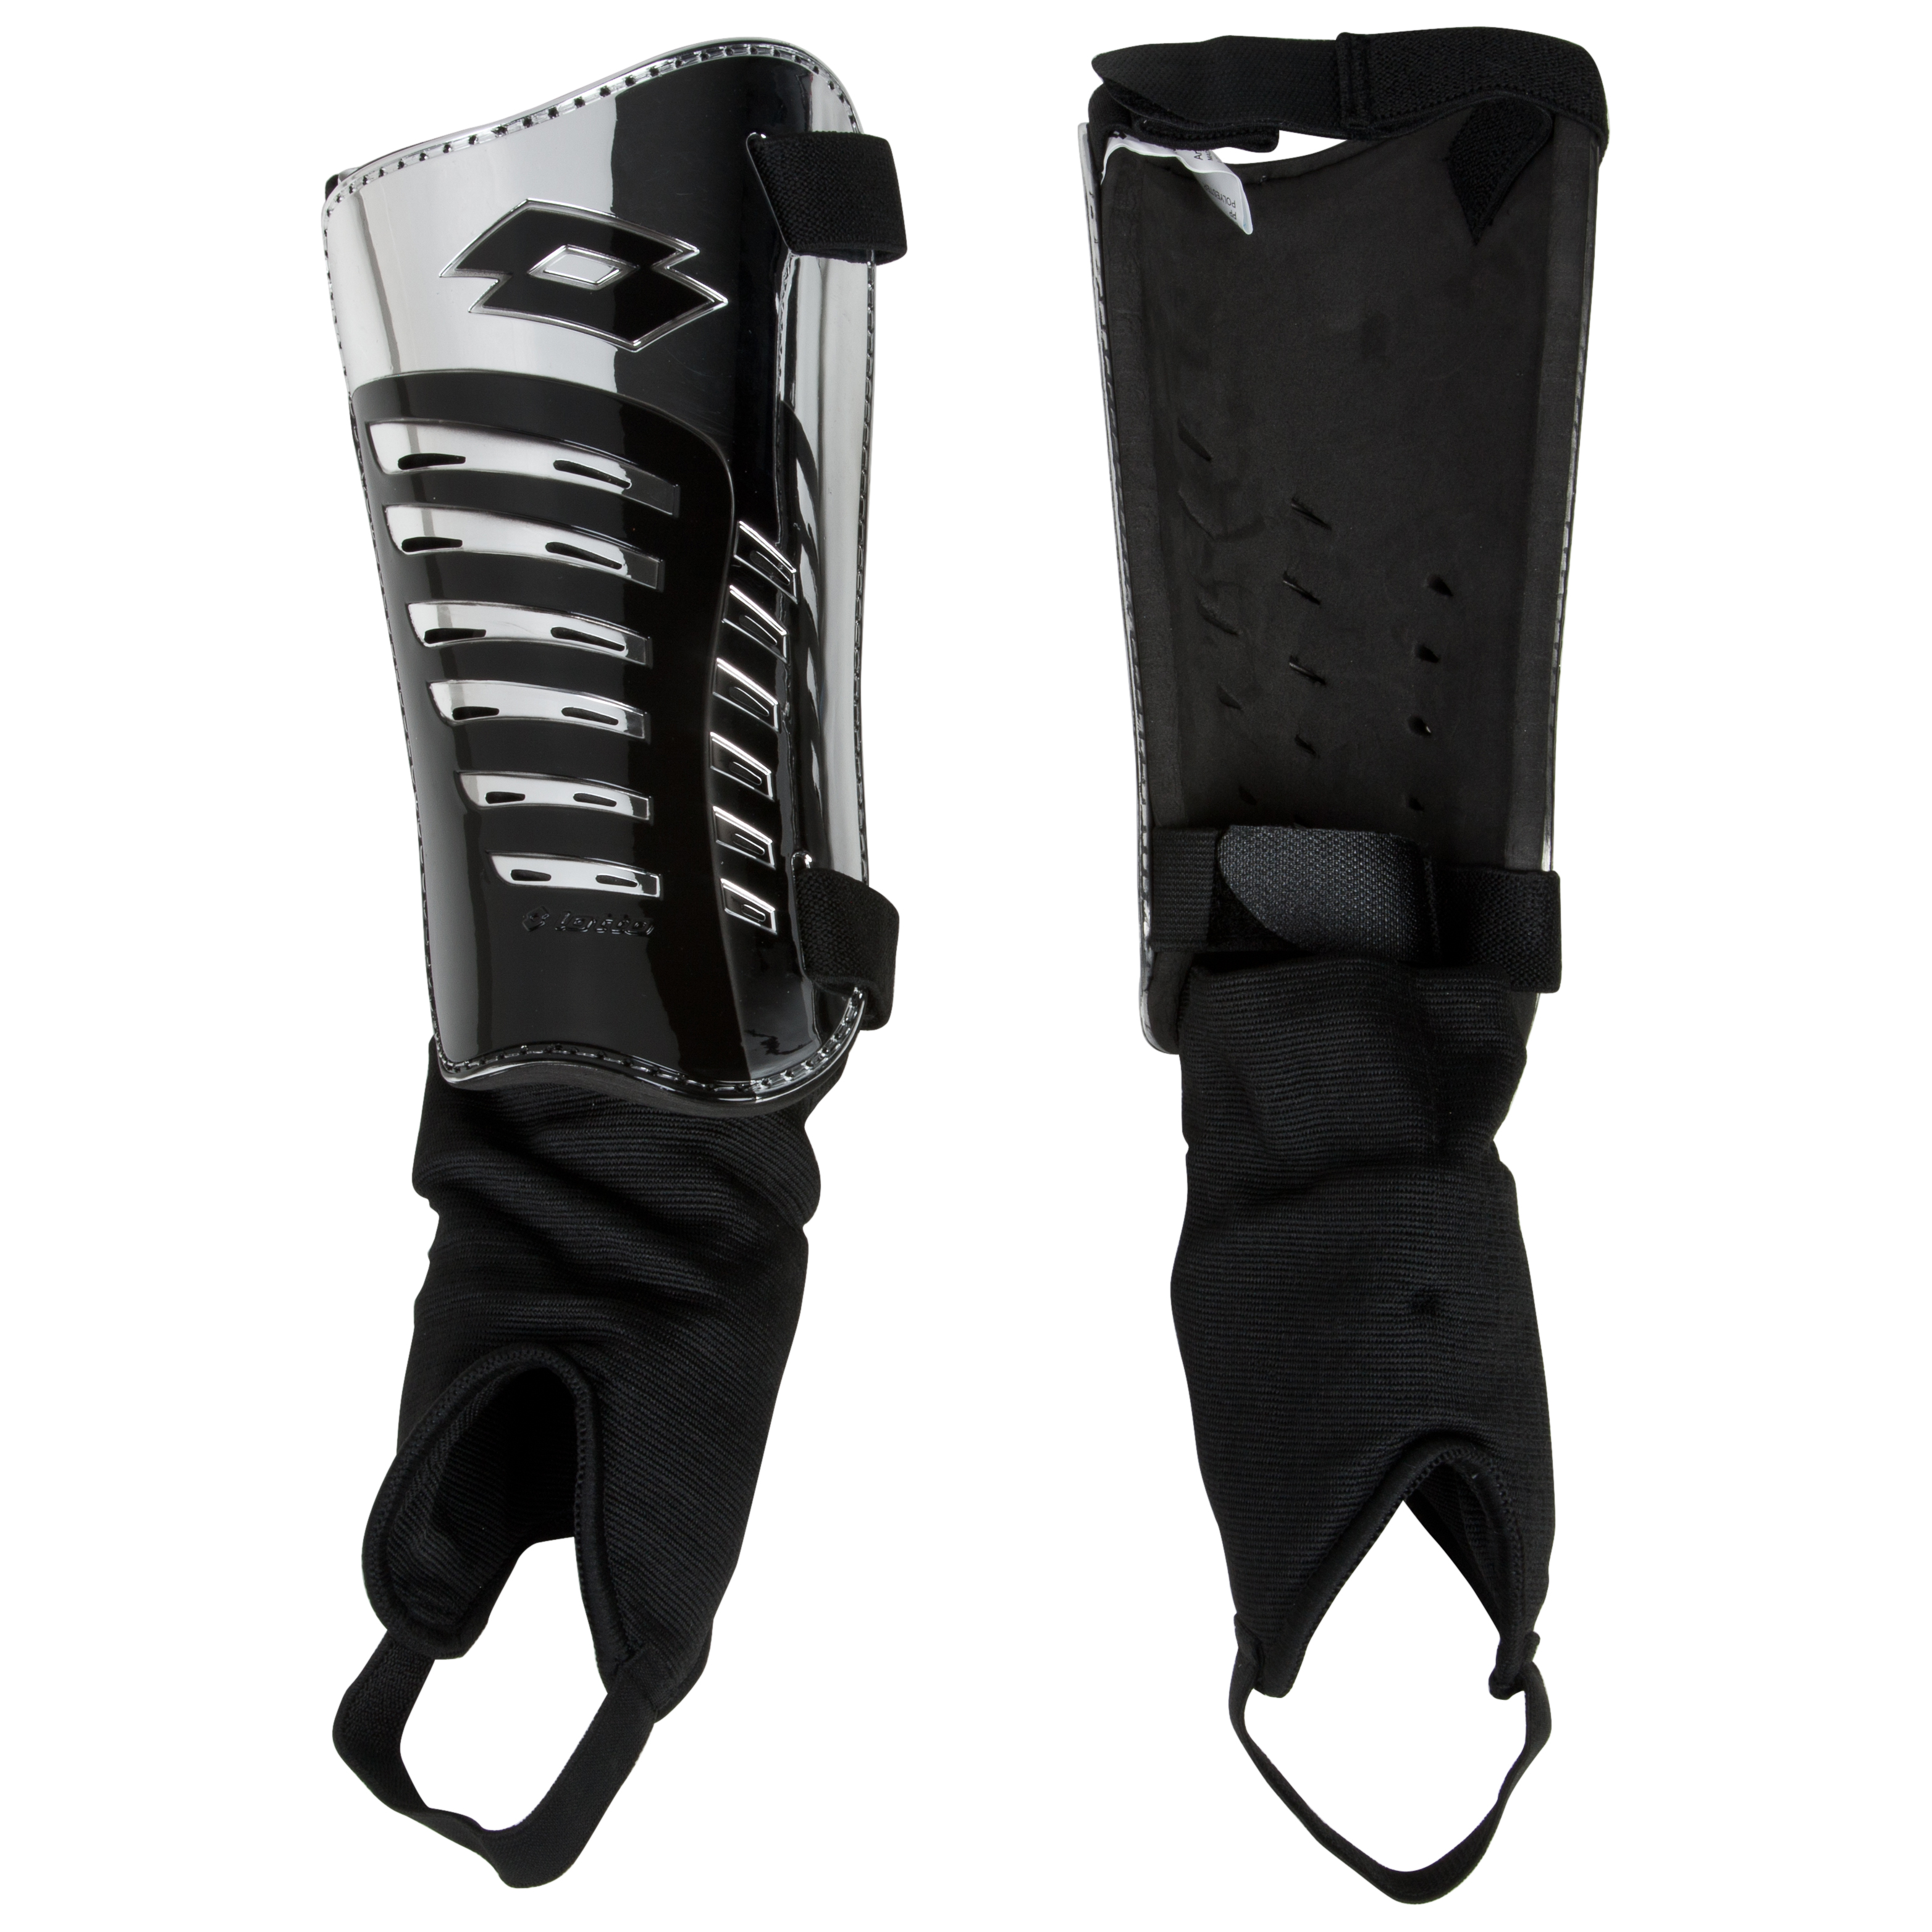 Lotto SH500 Shin Pads - Chrome/Black - Small